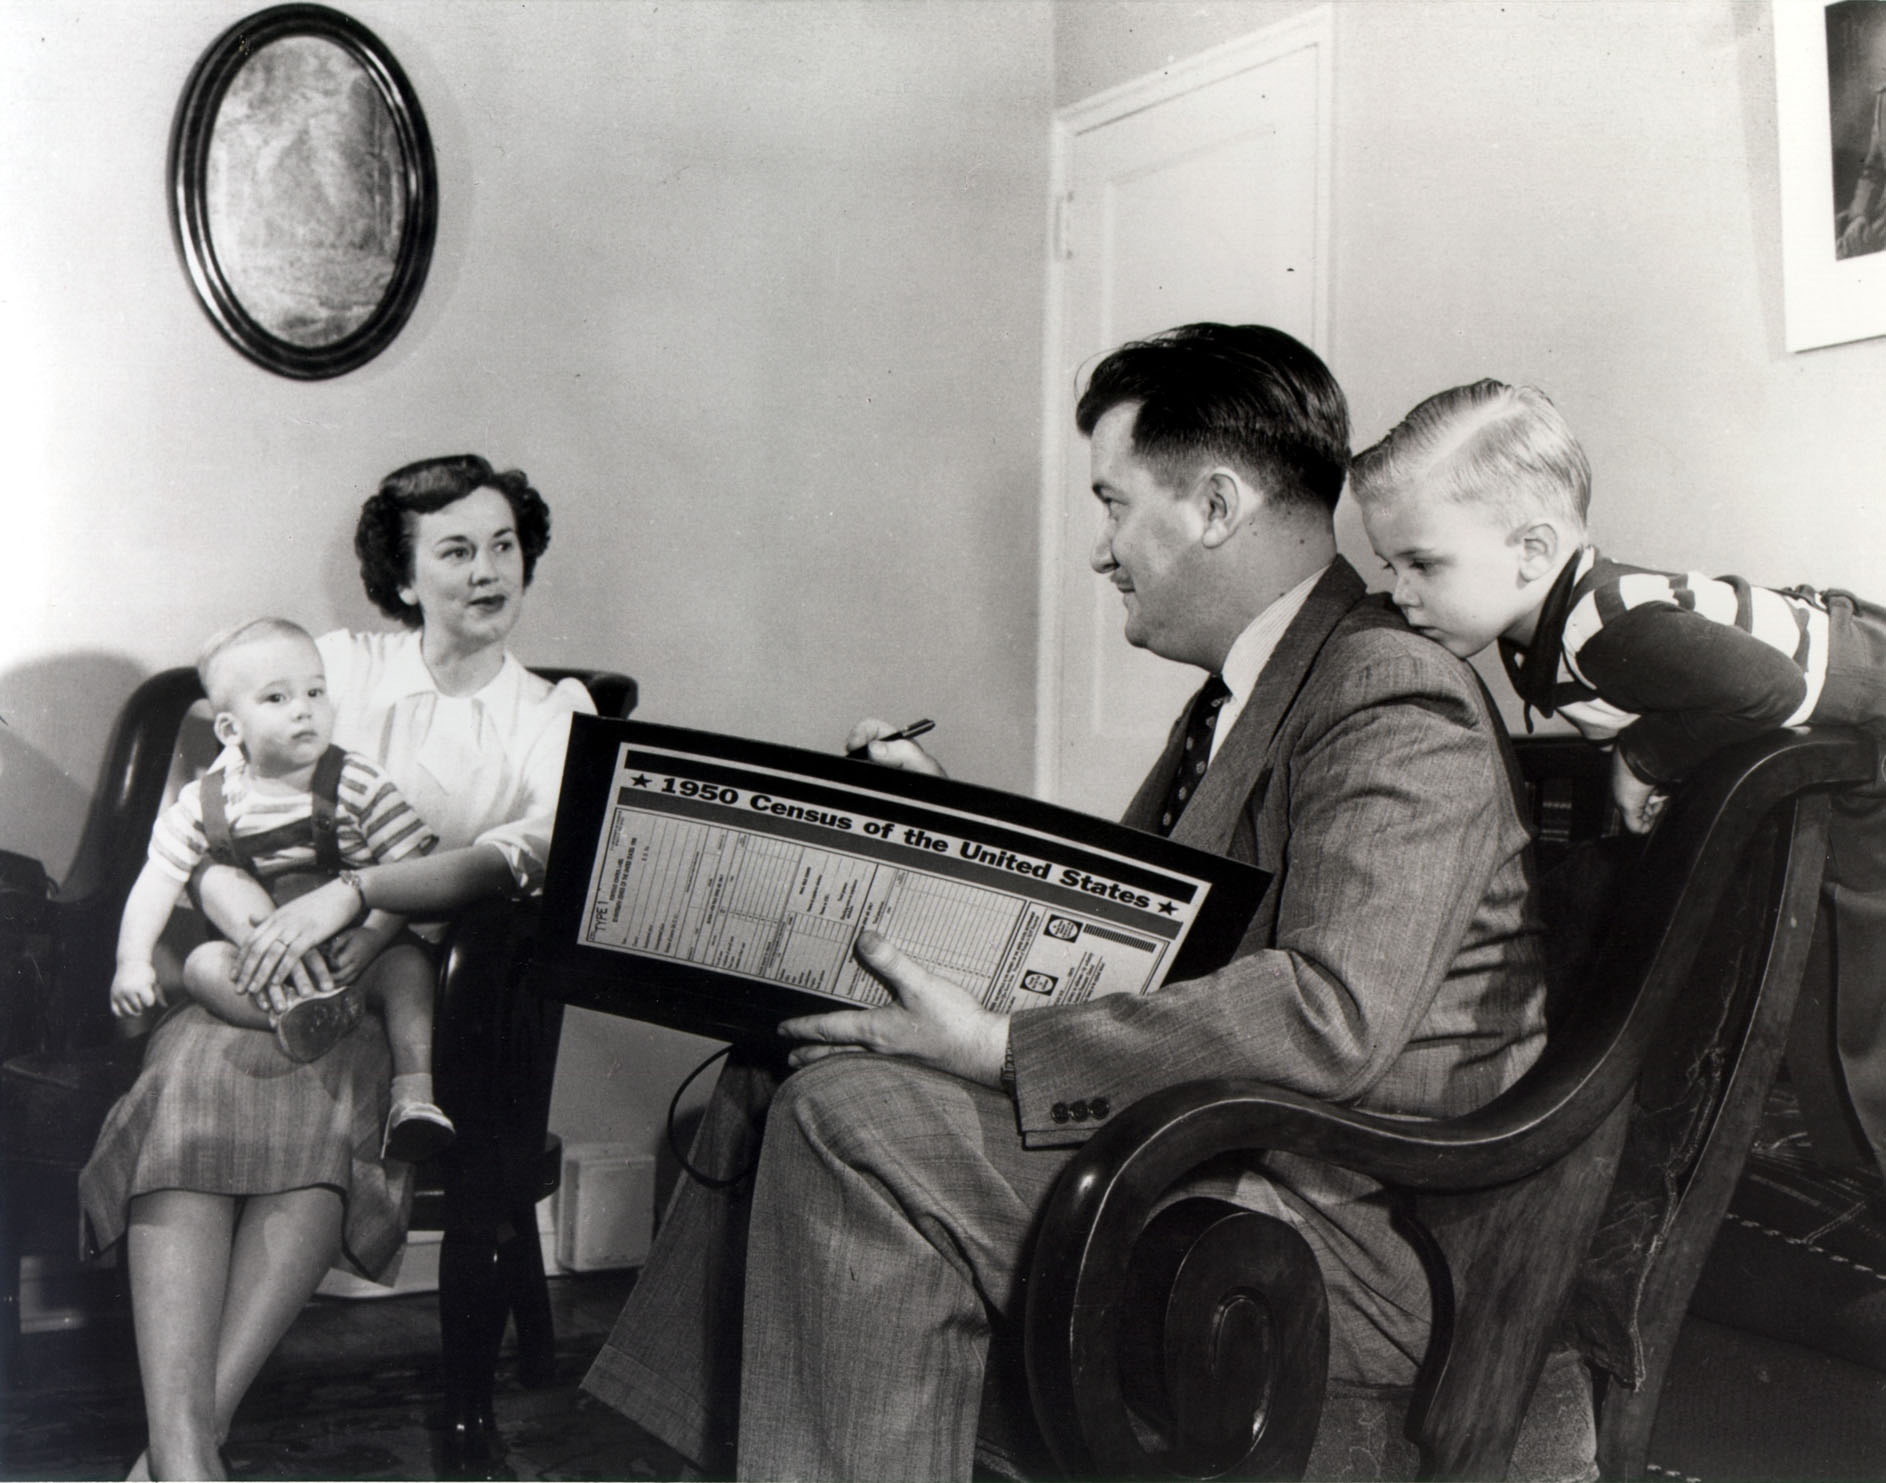 Census enumerator in 1950 interviewing a family